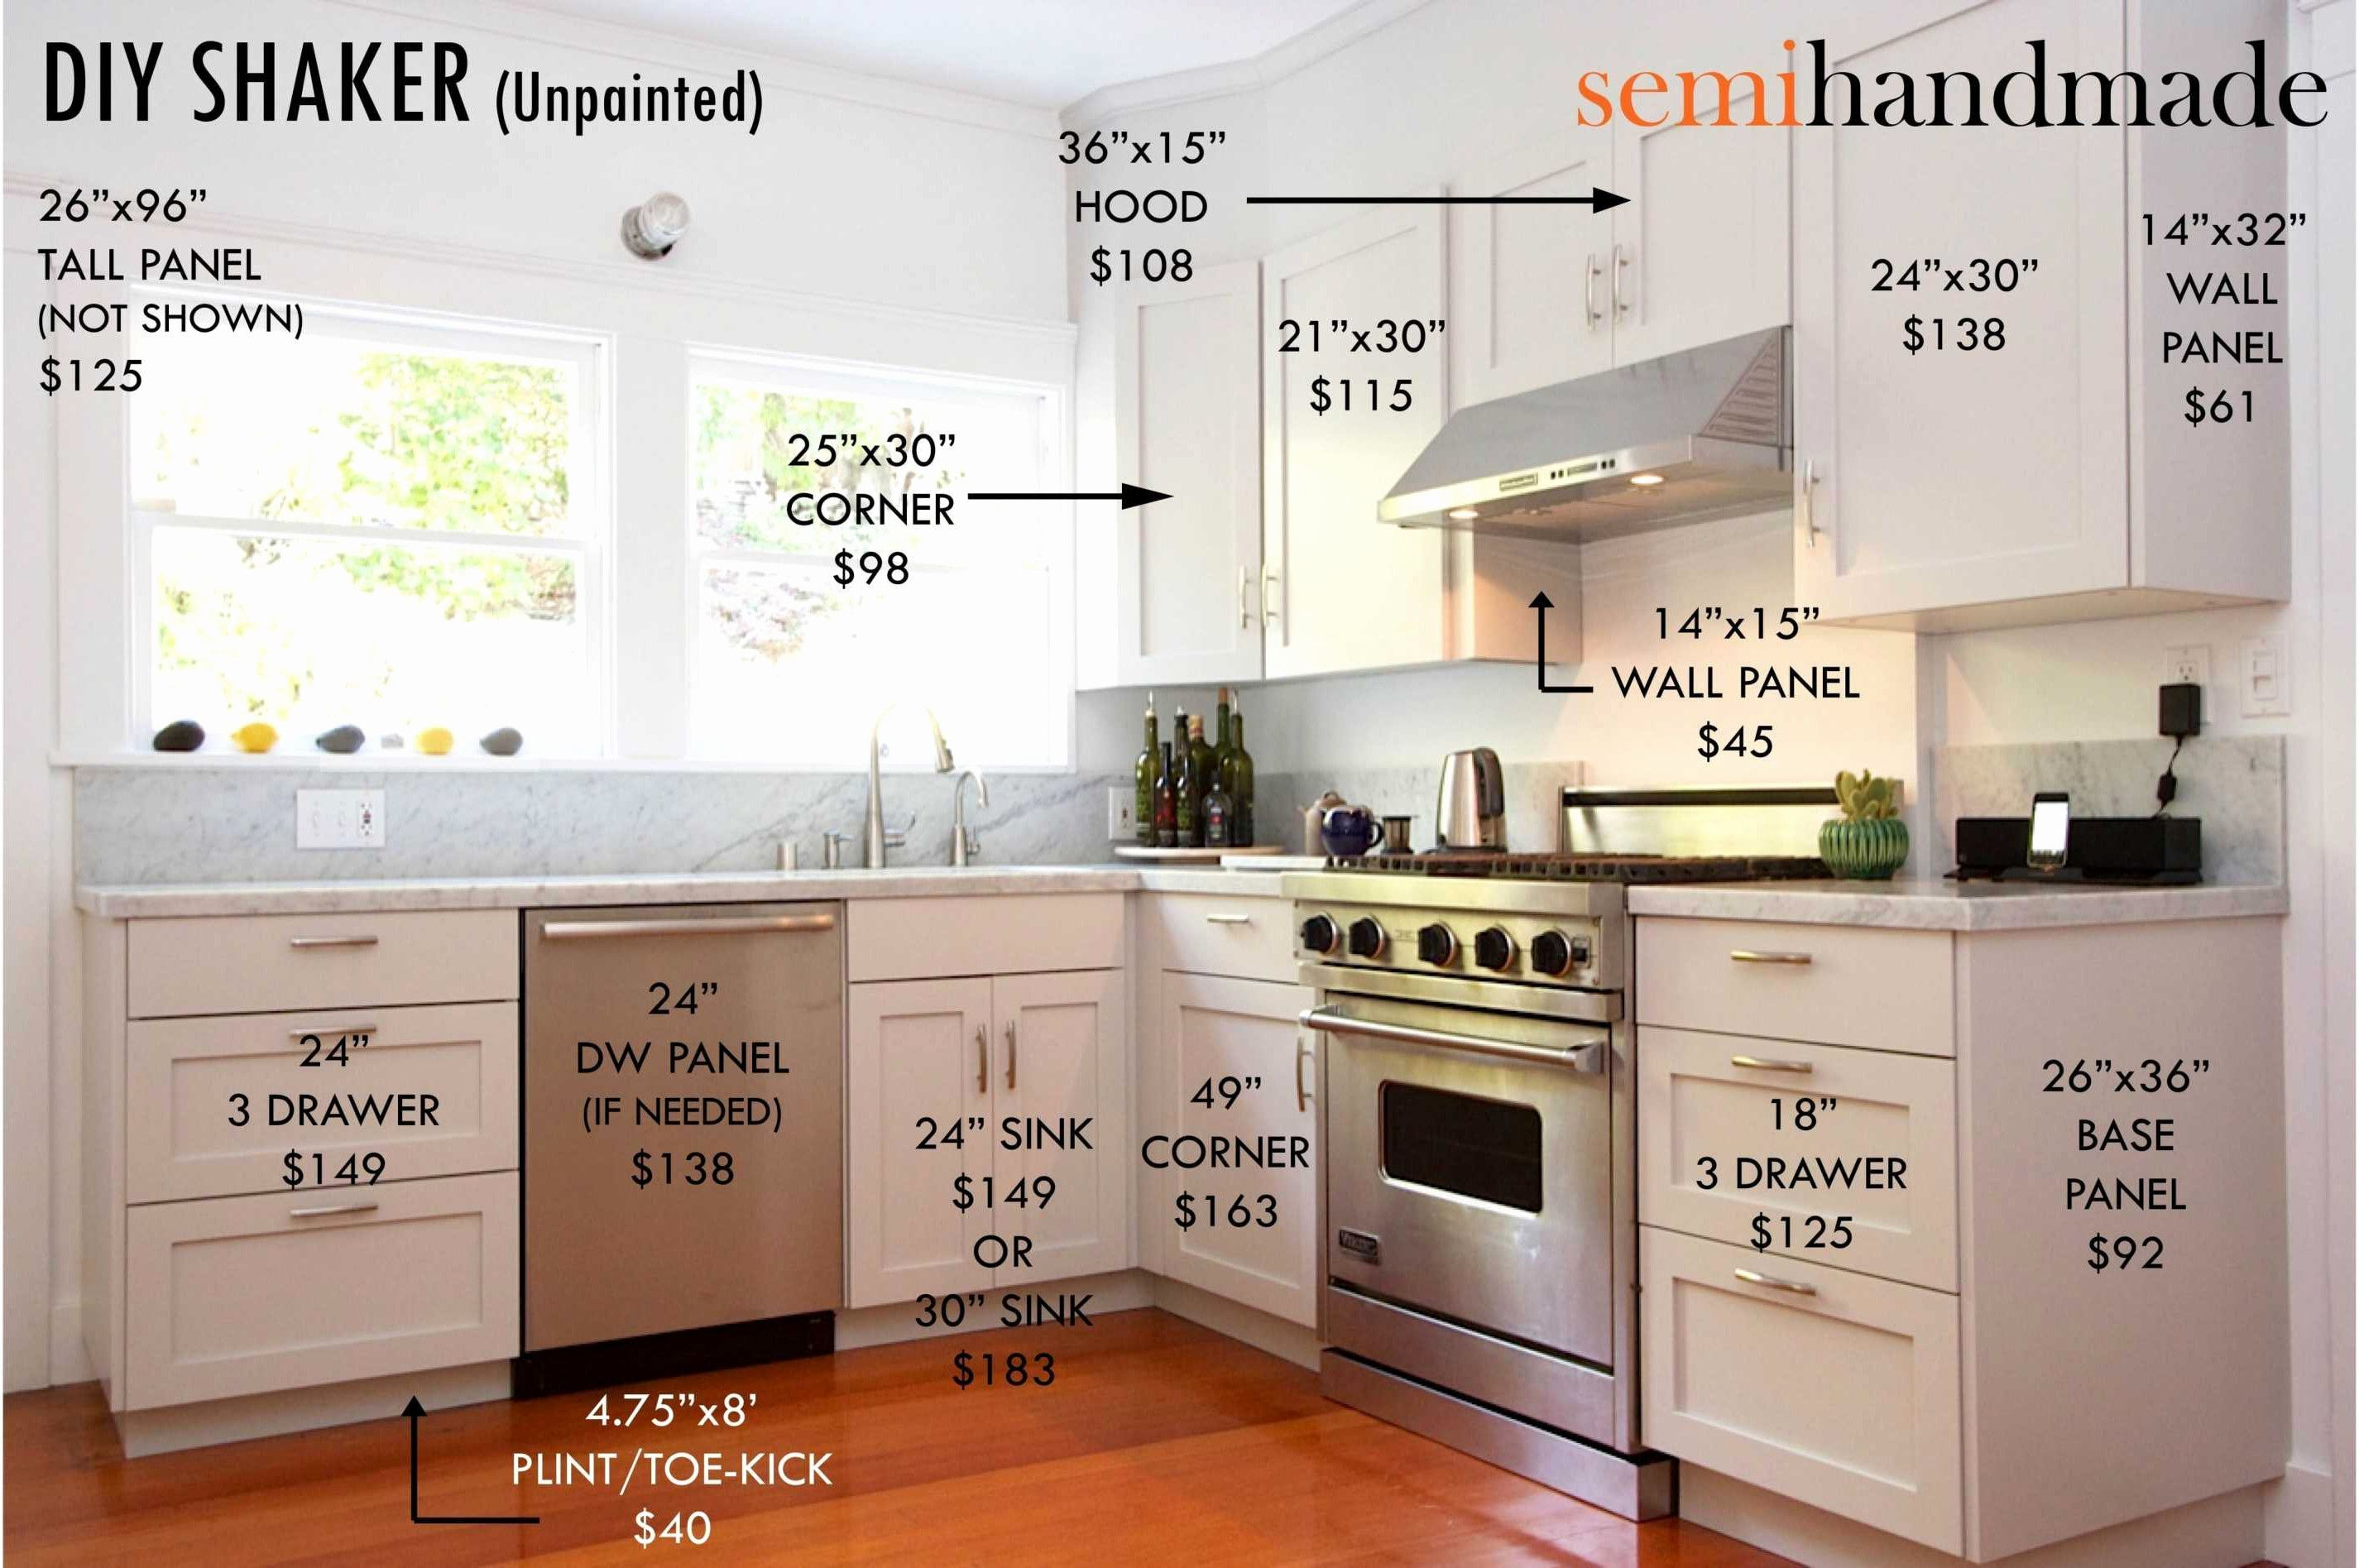 - FancyLovely Kitchen Cabinet Cost Calculator